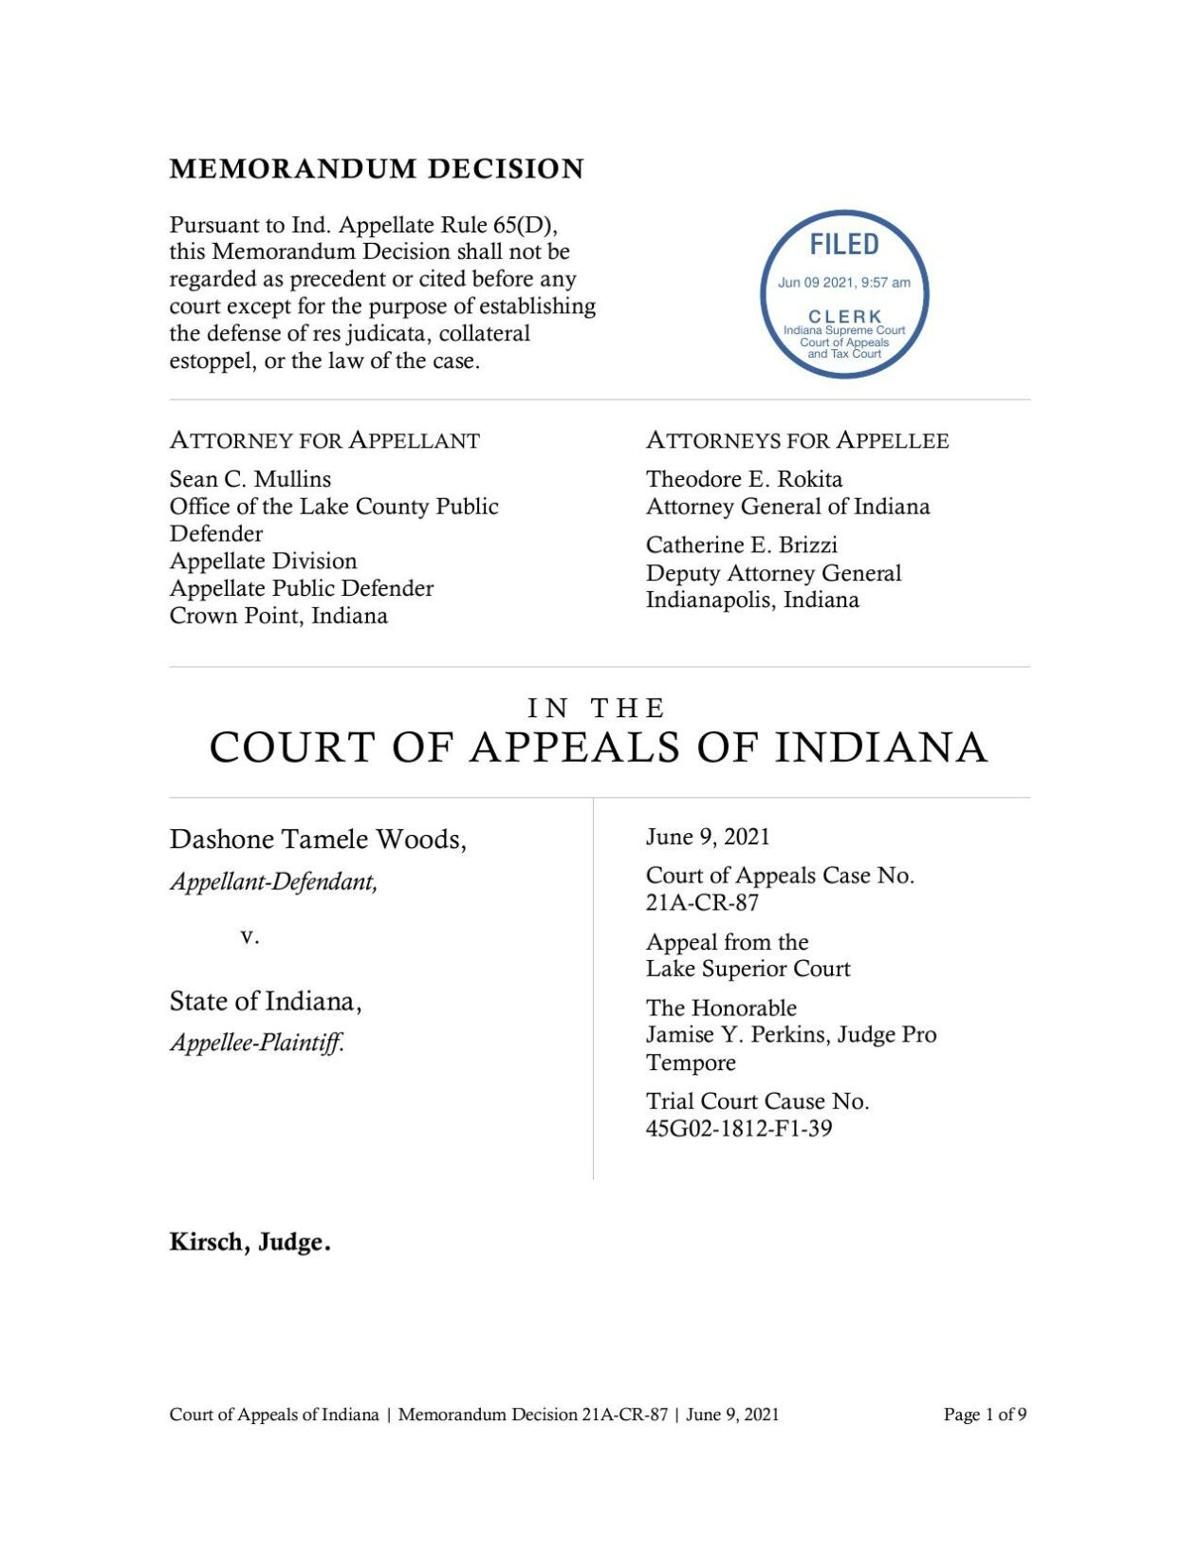 Woods v. State ruling of Indiana Court of Appeals